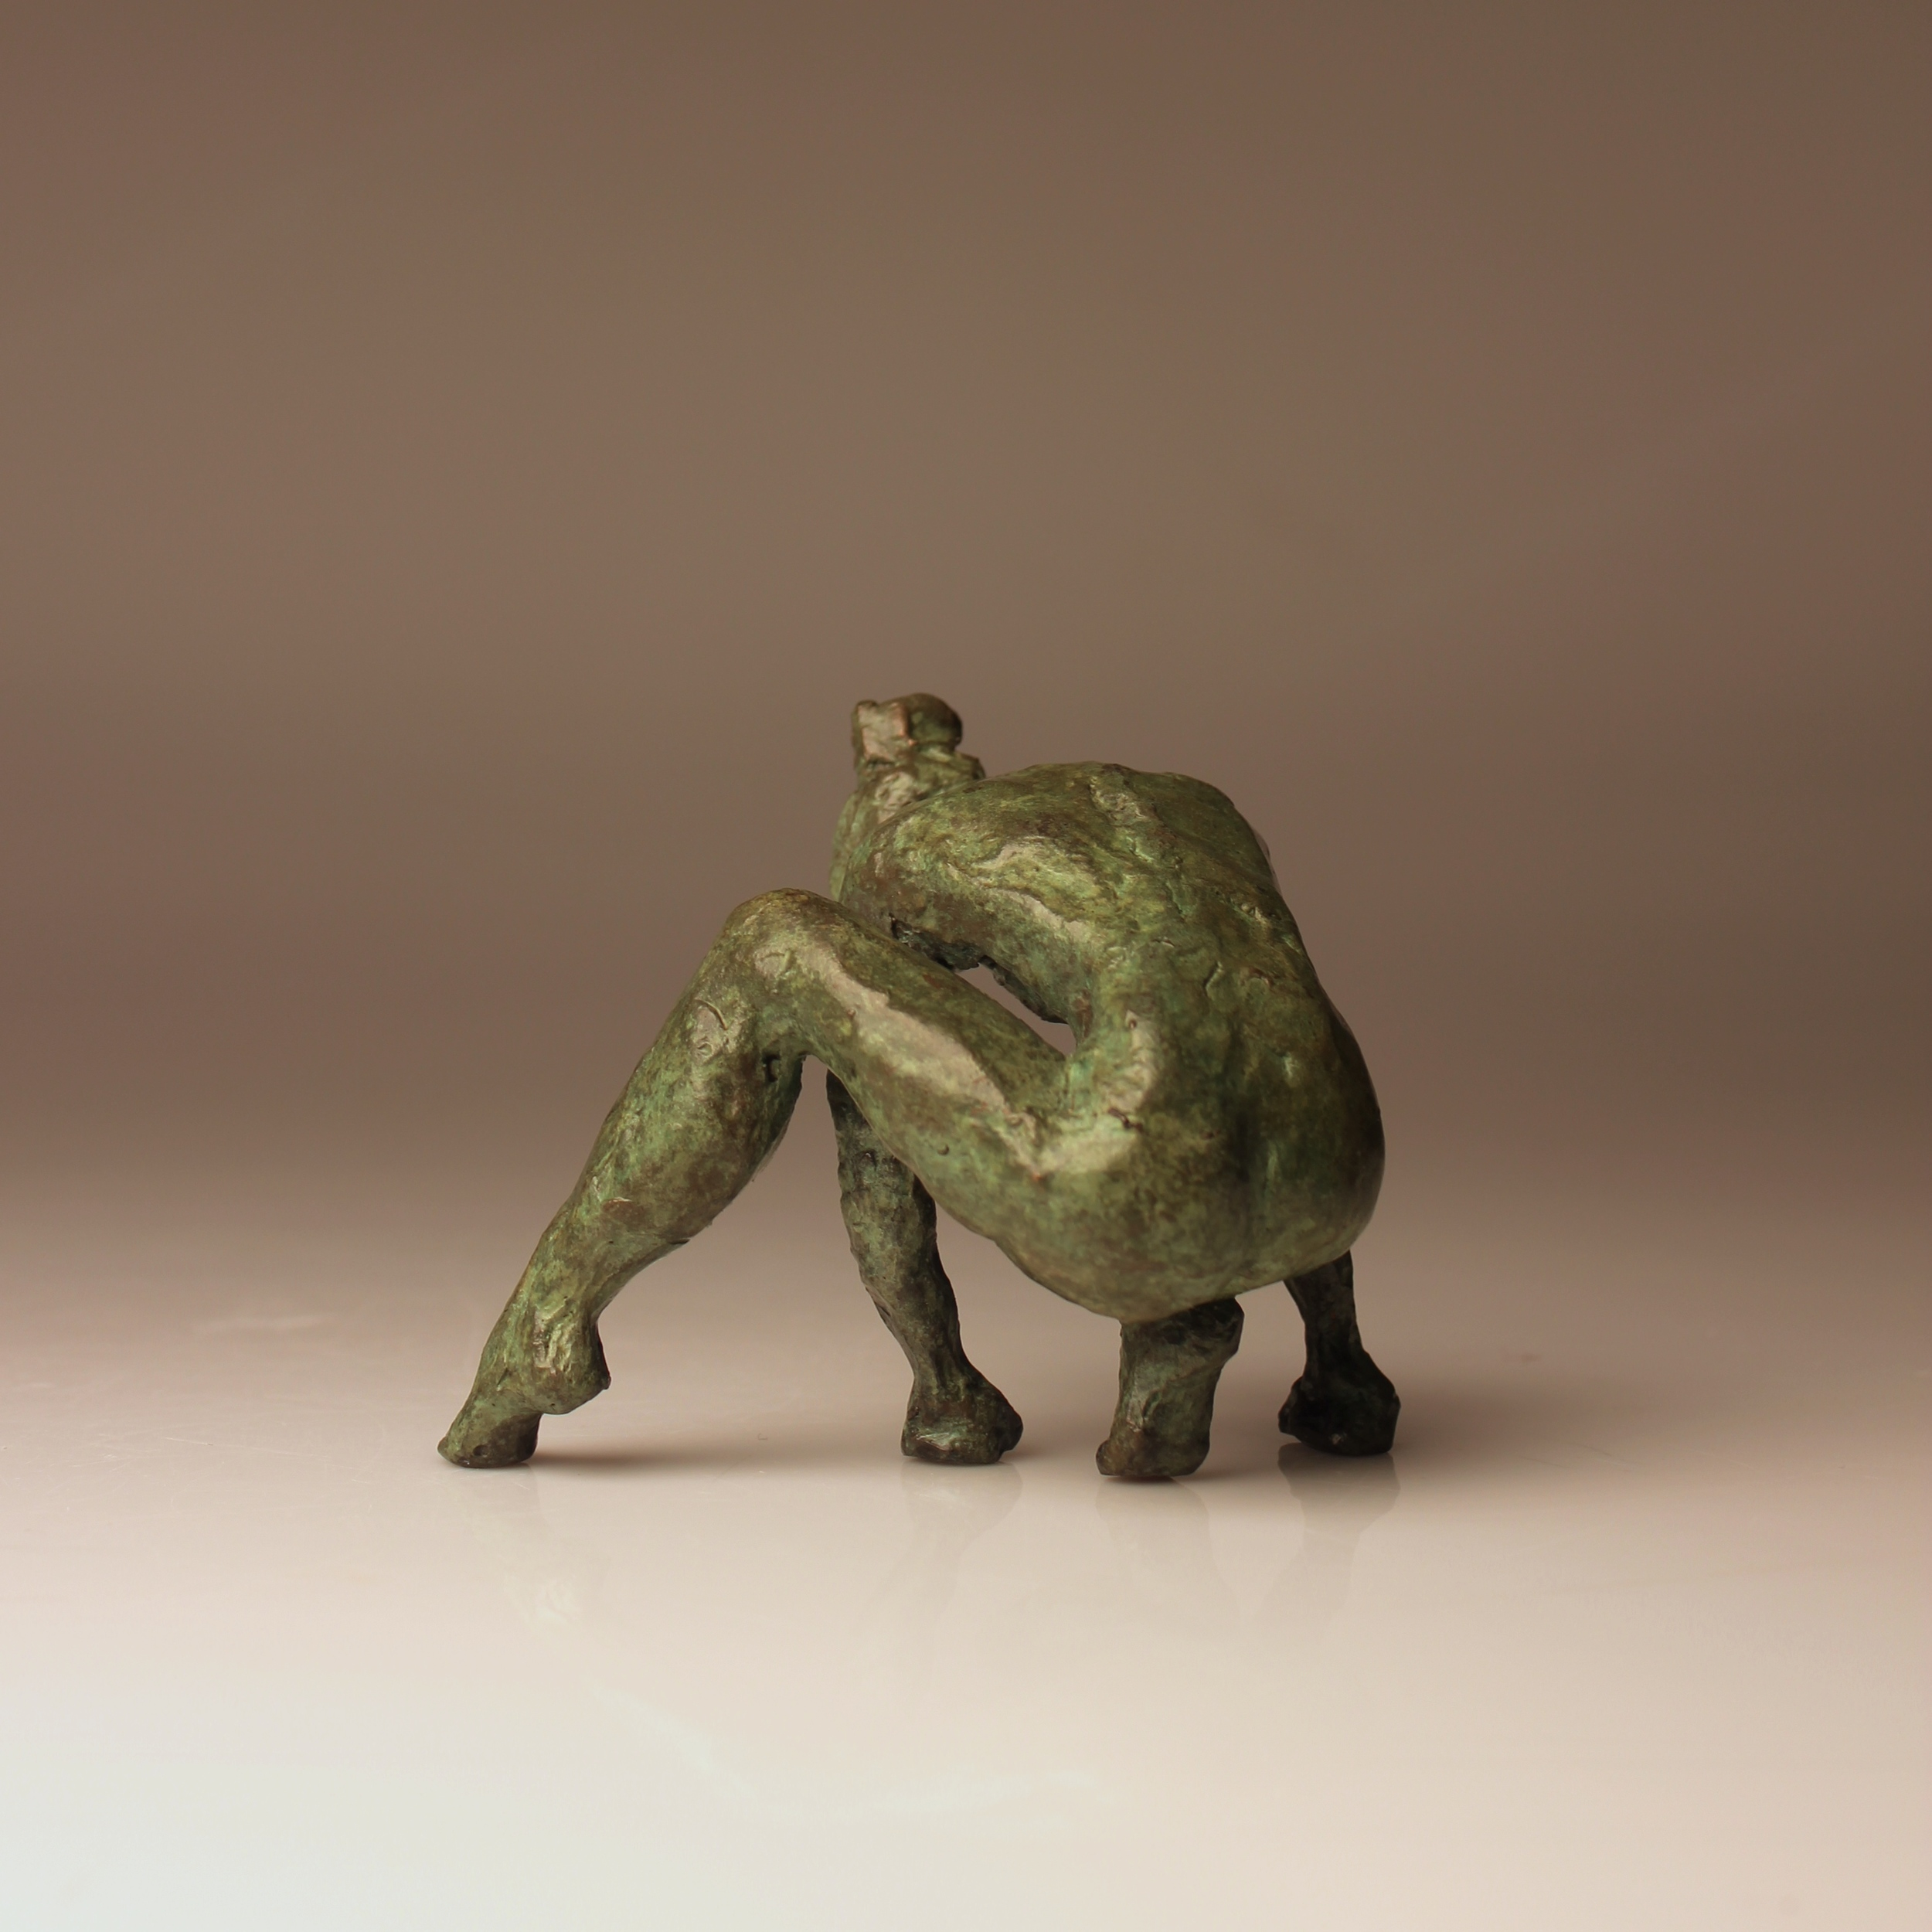 "Grounded, 4x3x3"", Bronze, 2016 (Edition of 3)"